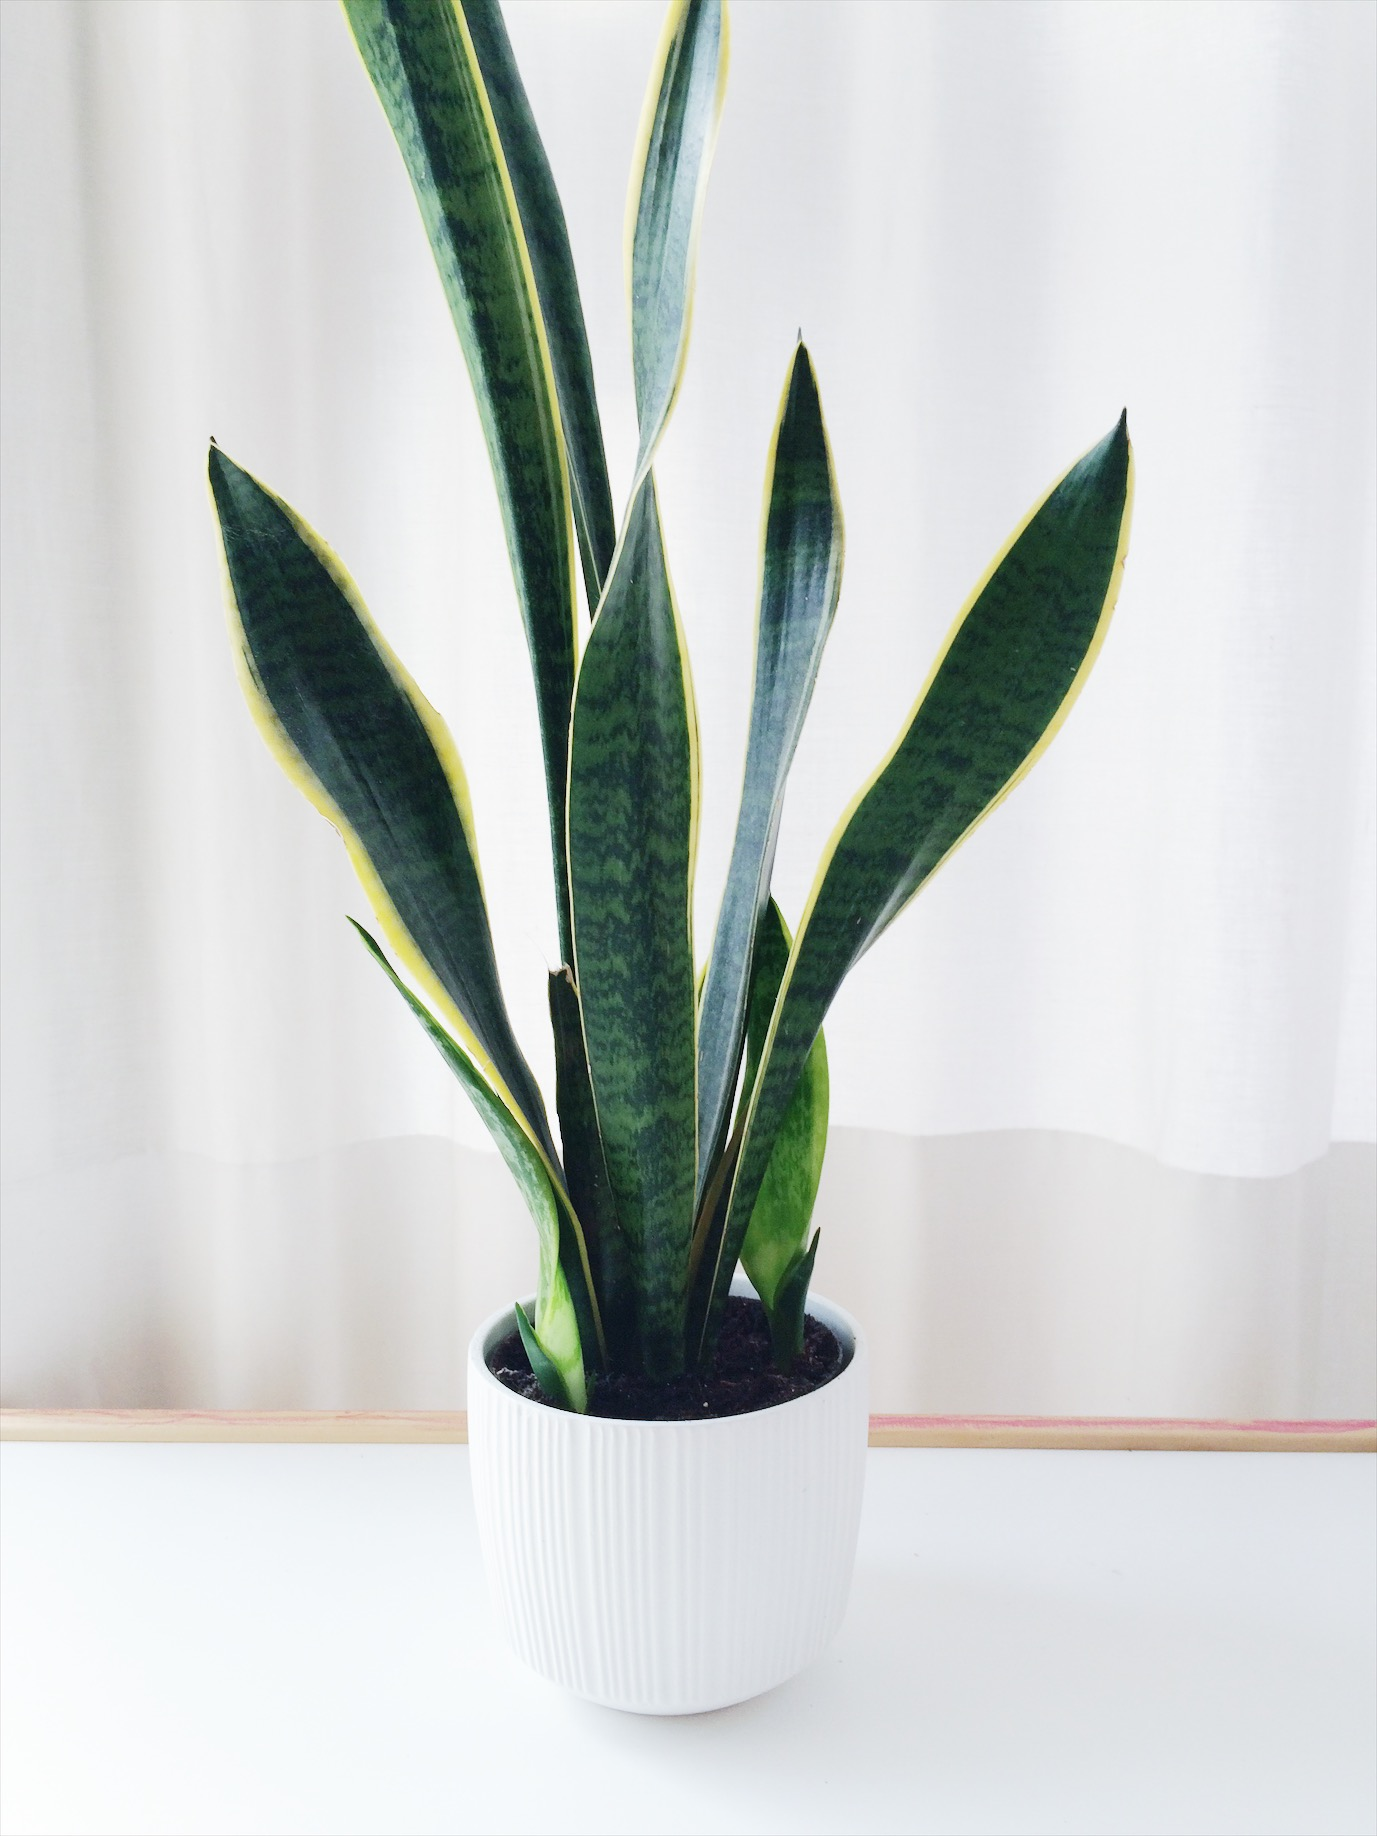 snake plant in a white ceramic pot in front of a white curtain